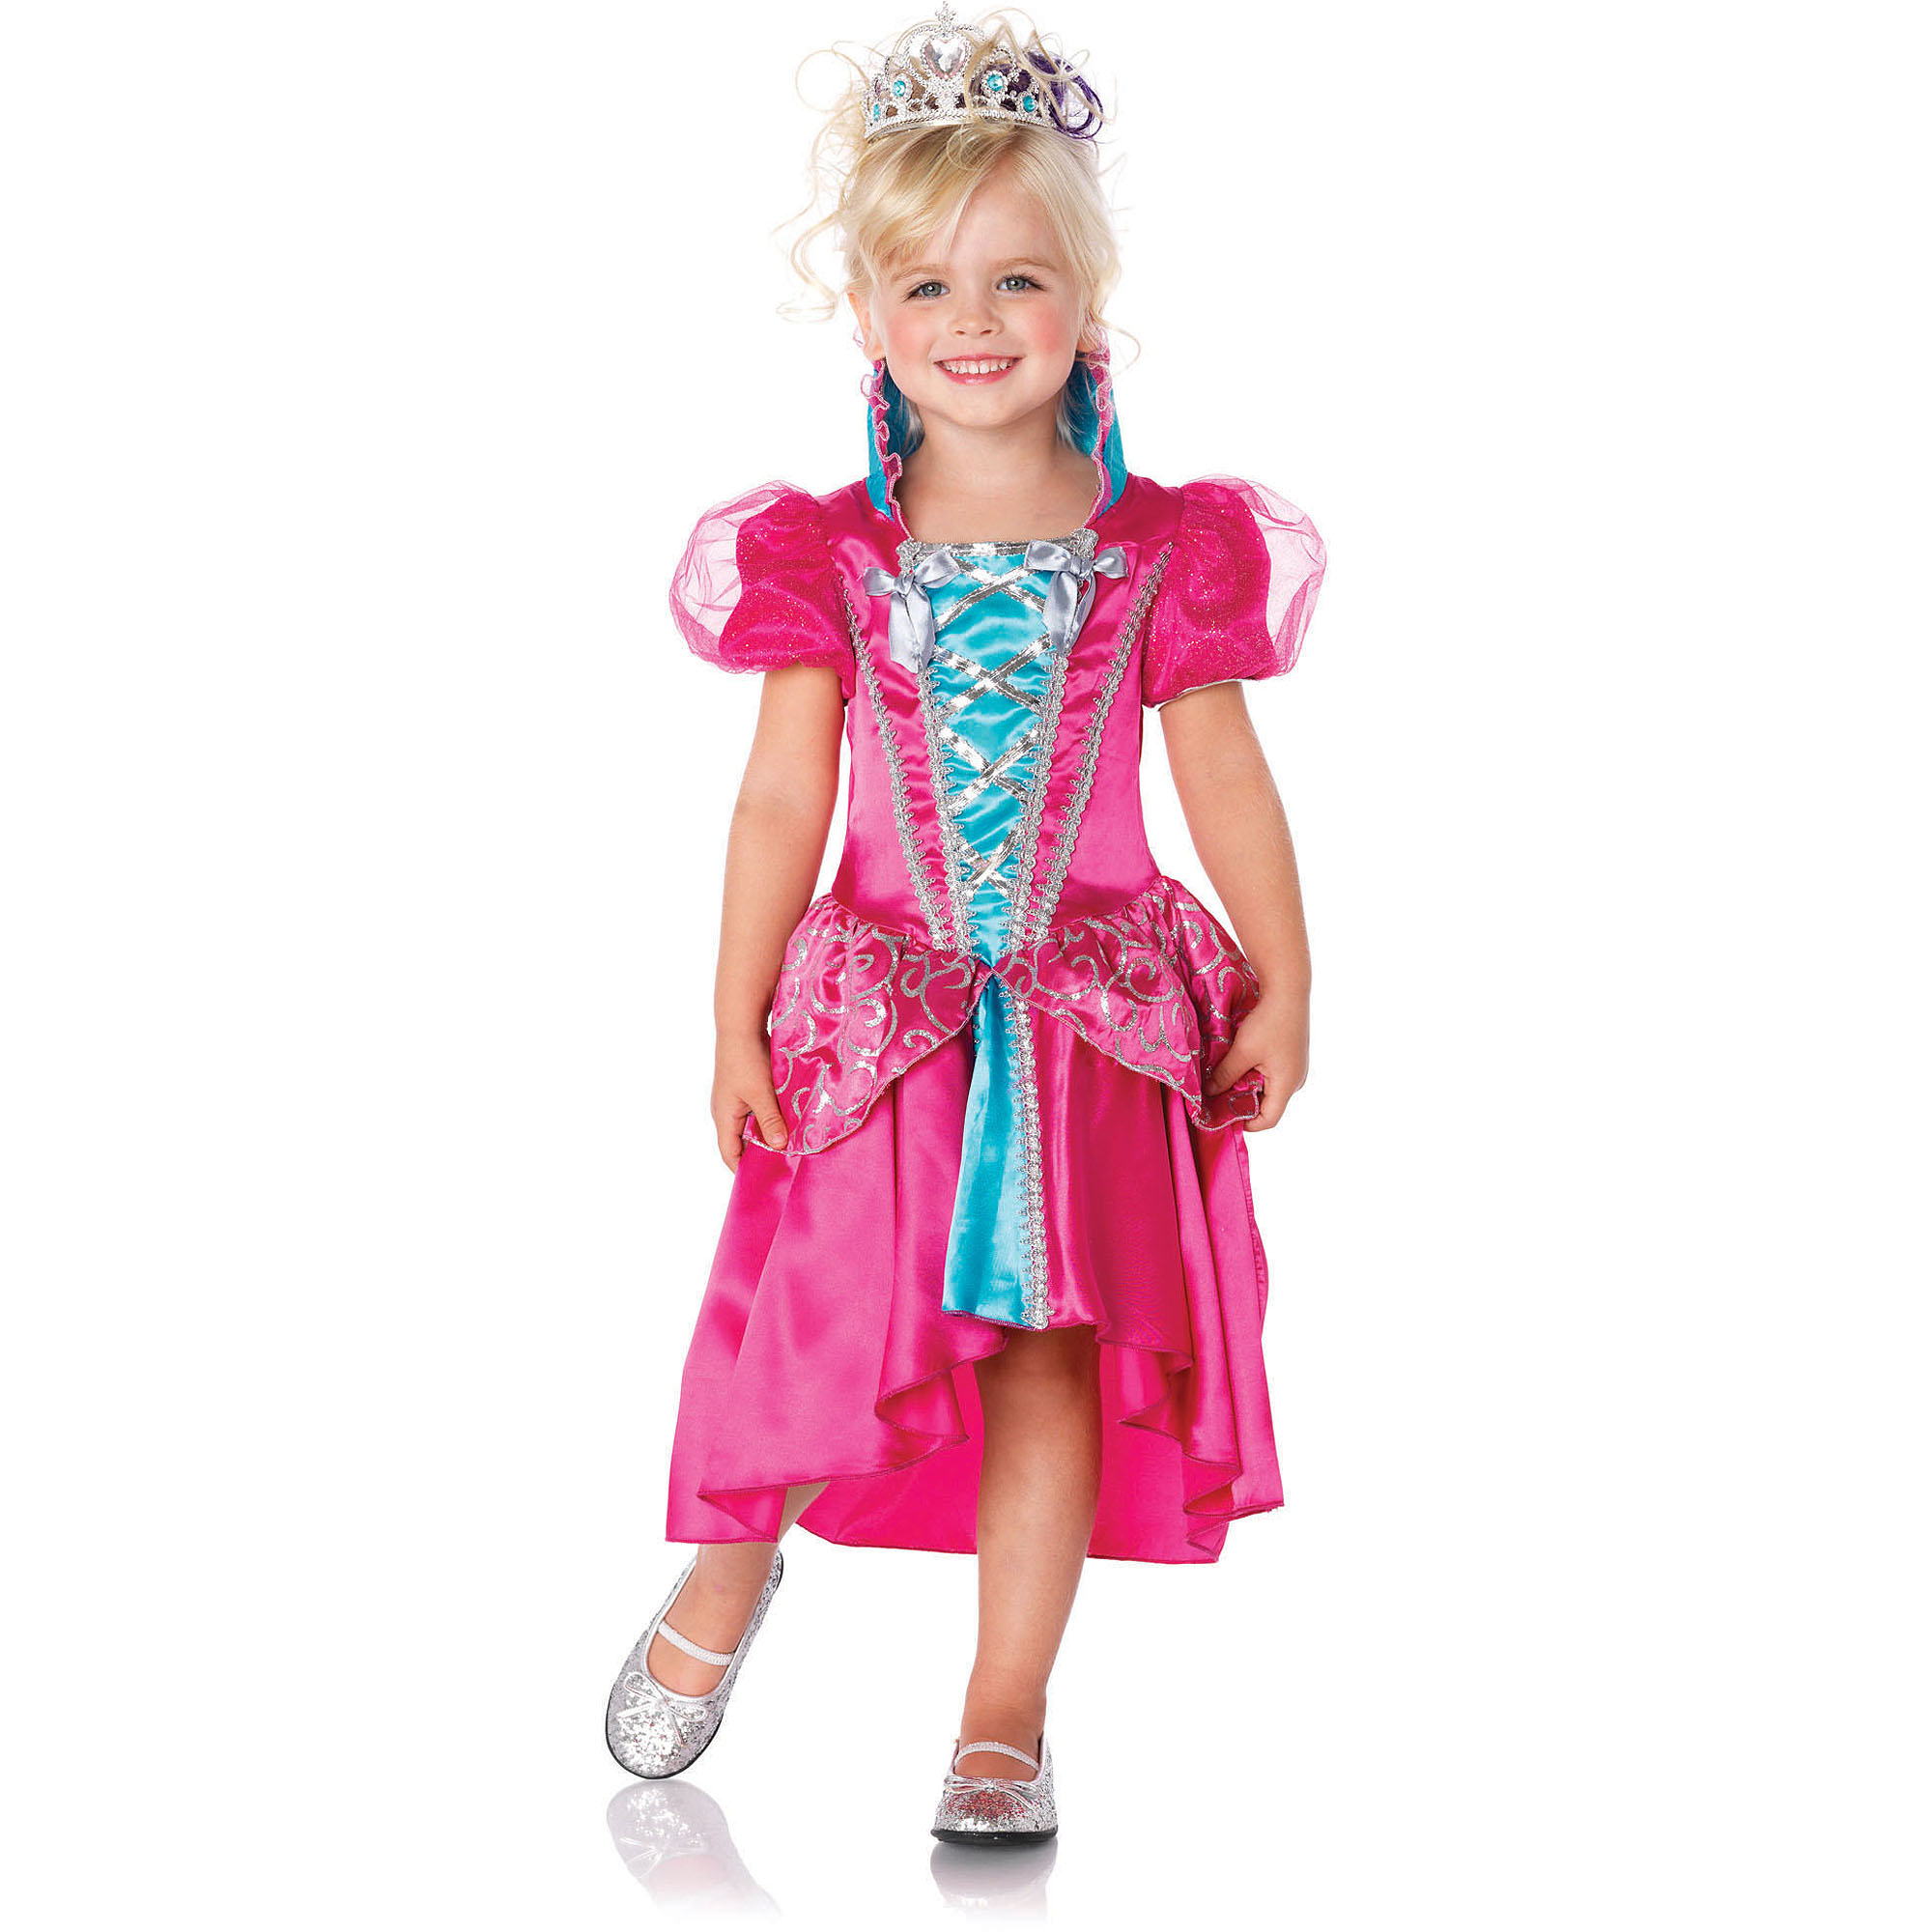 Royal Princess Toddler Halloween Costume